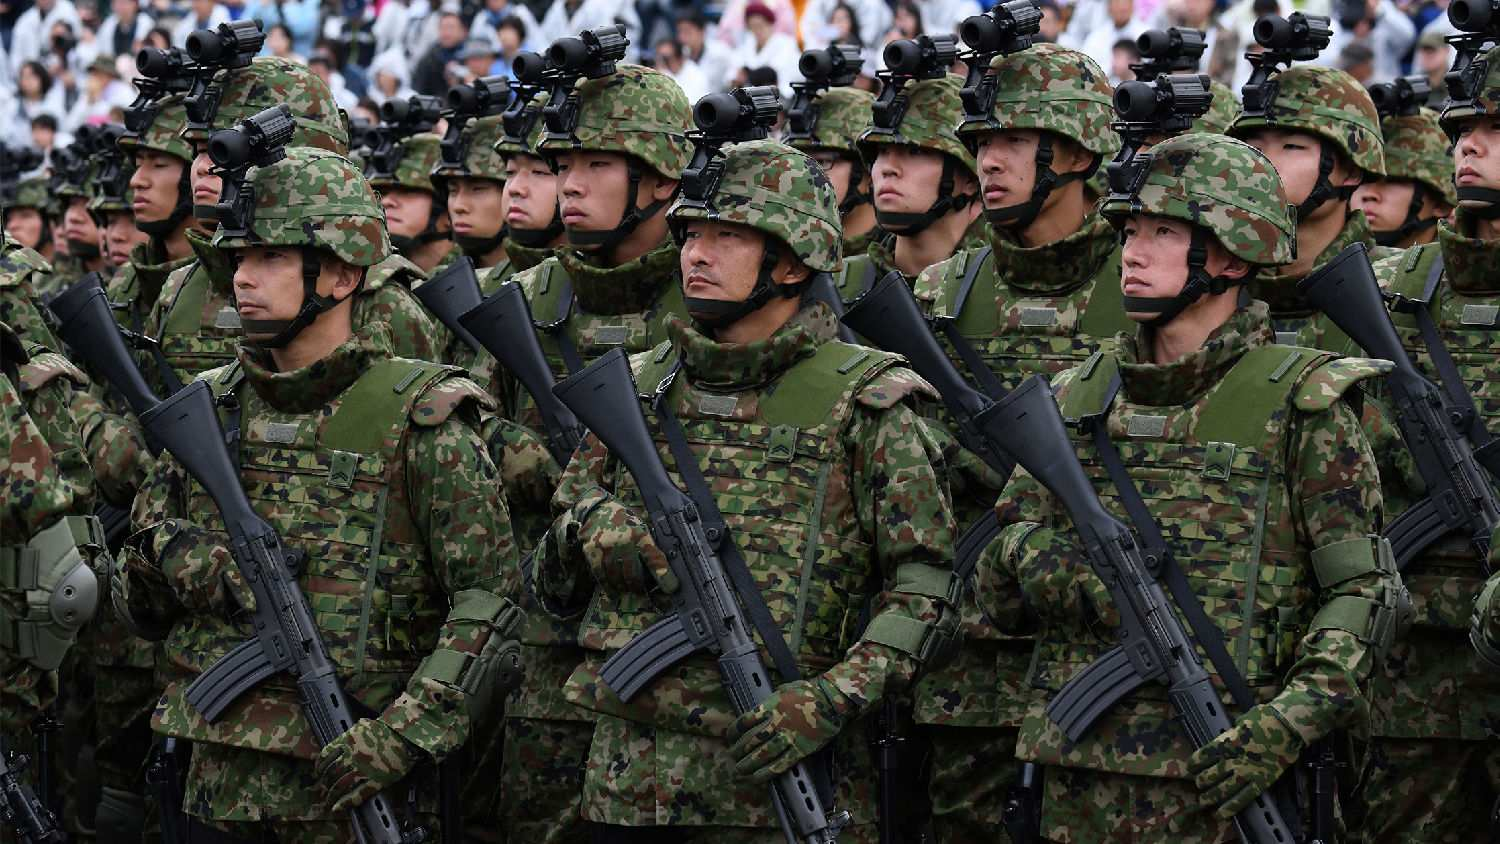 Top 10 Deadliest Militaries Of All Time In The World